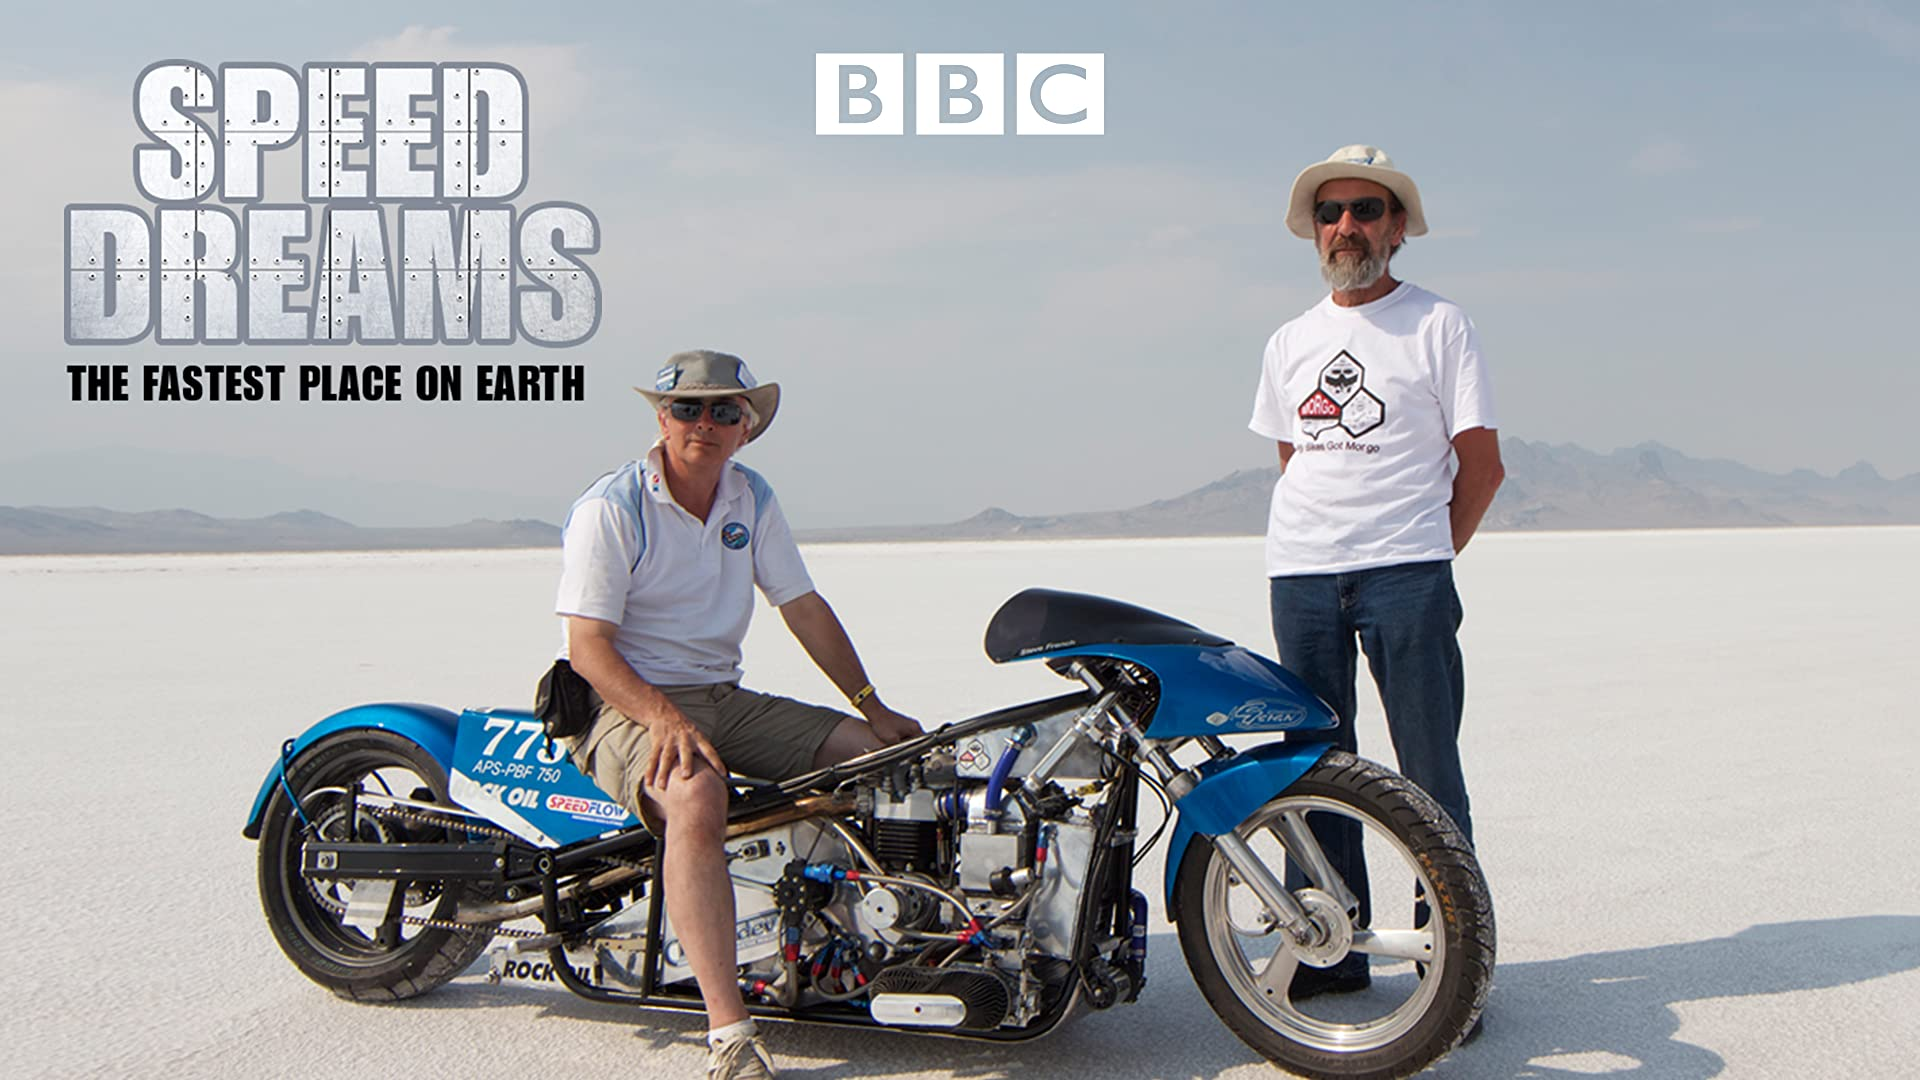 Speed Dreams - The Fastest Place on Earth